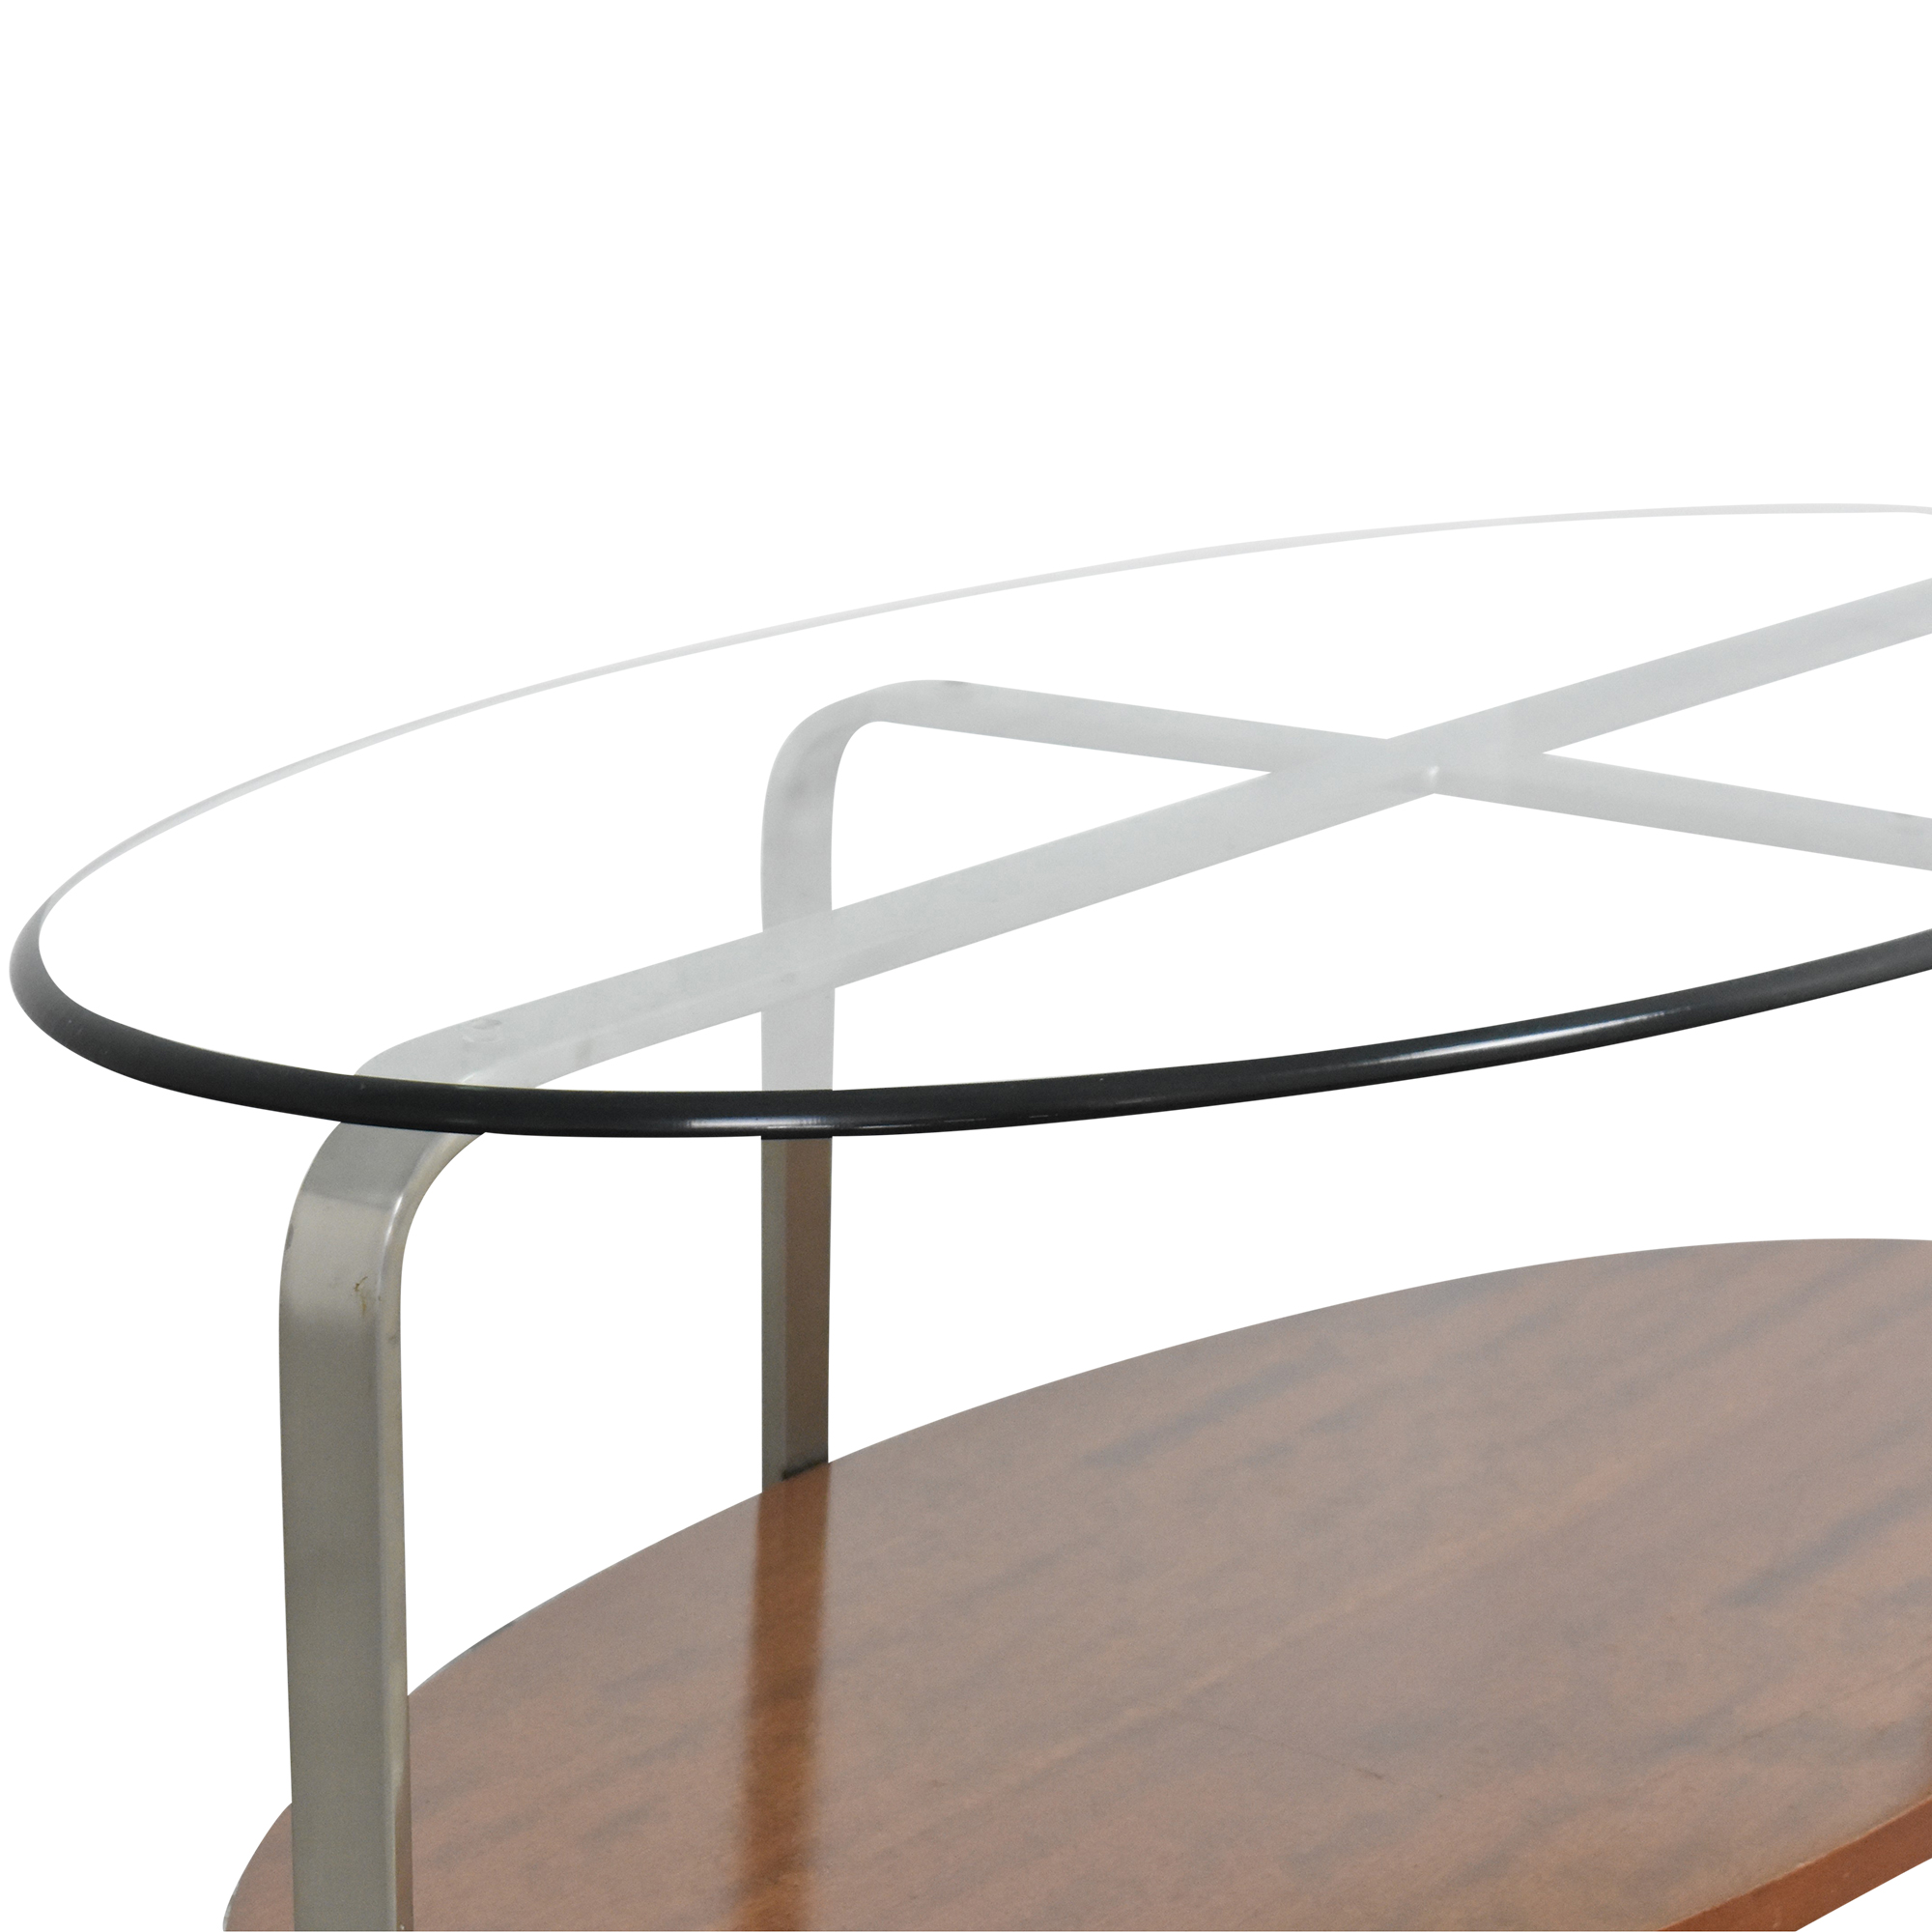 The Lane Company The Lane Company Oval Coffee Table discount